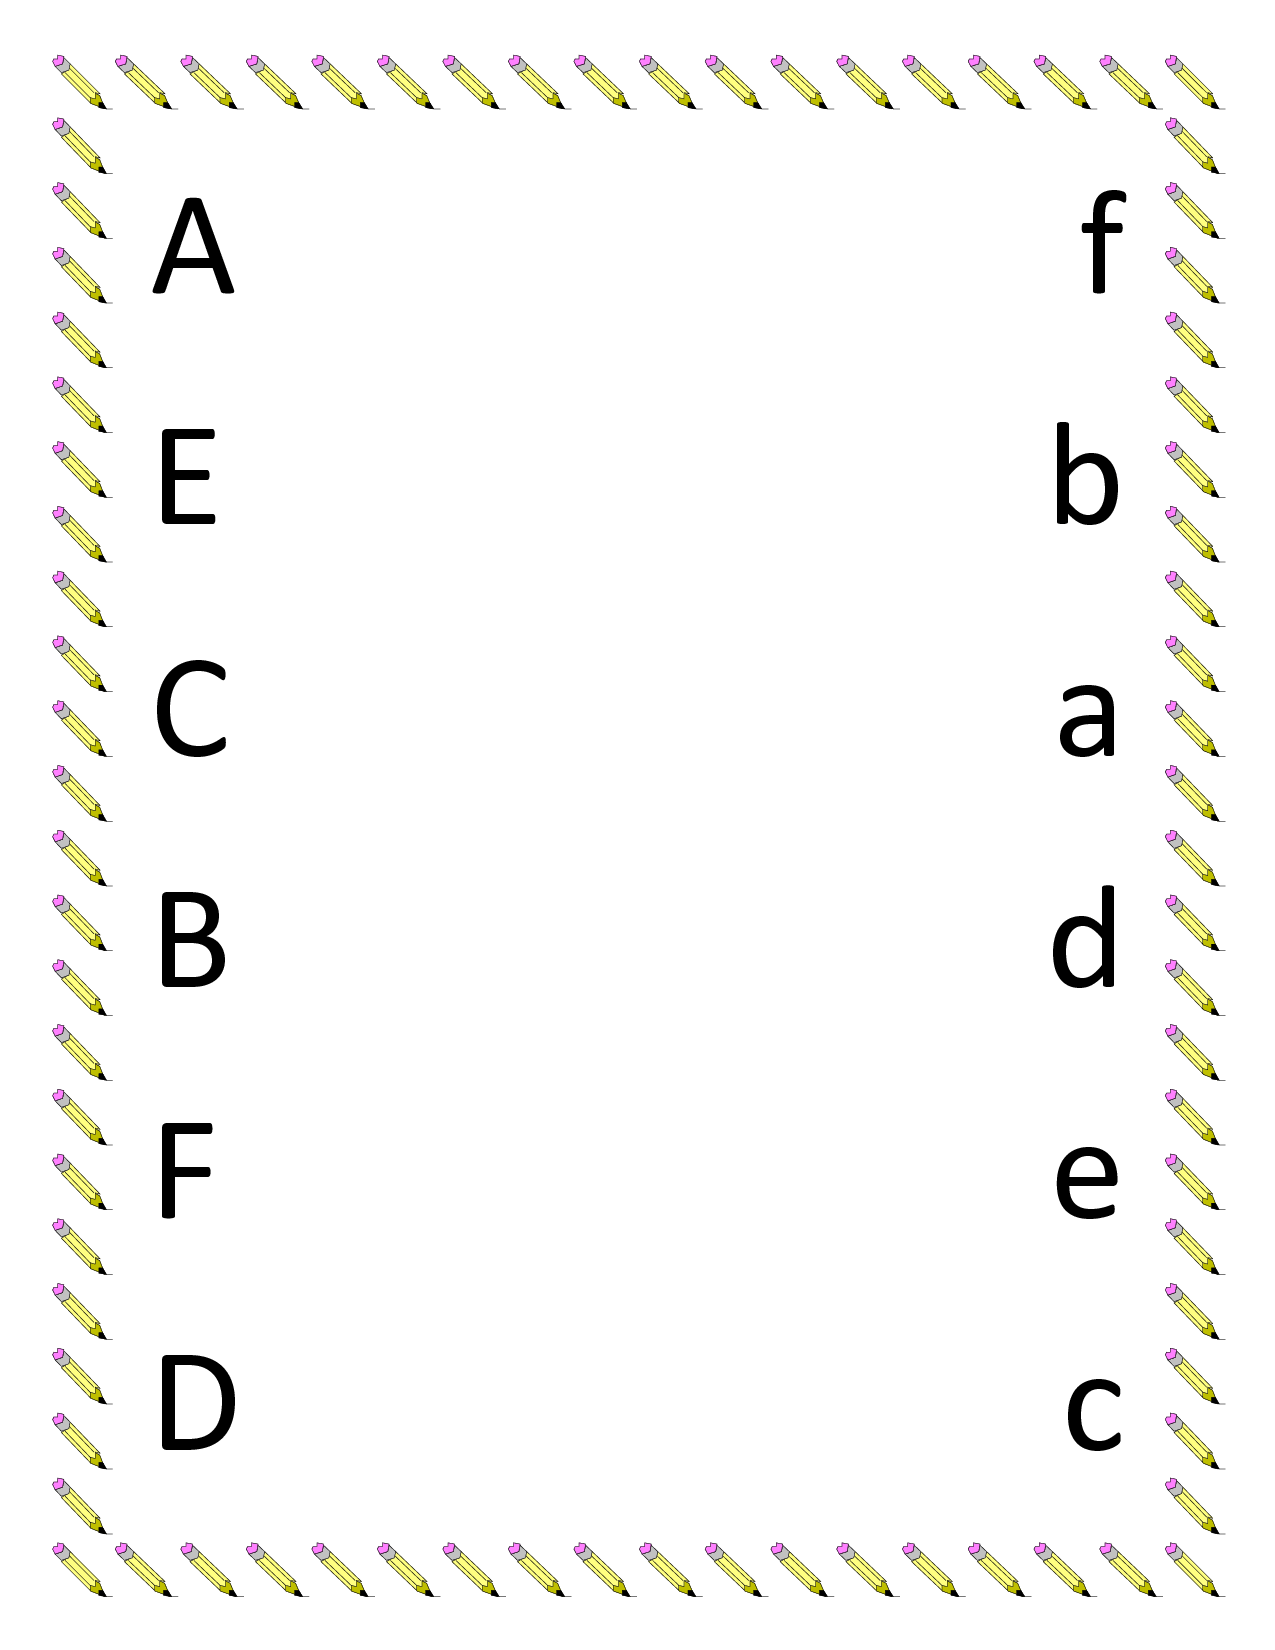 Kindergarten Worksheets Preschool Worksheets Printables For Kids 16